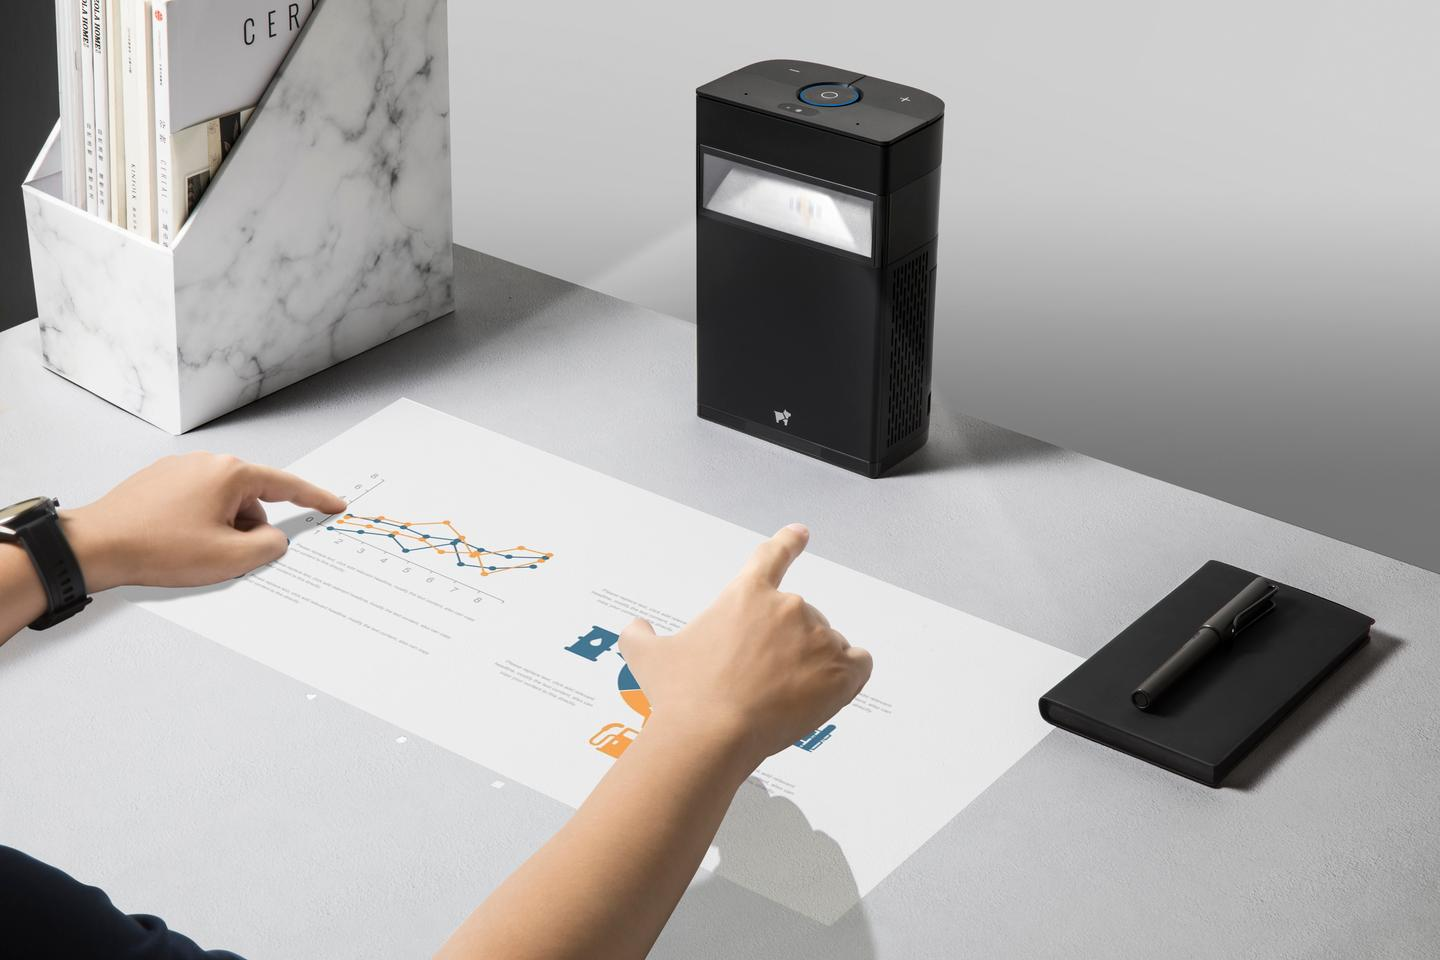 The touch display system can track up to 10 touch points